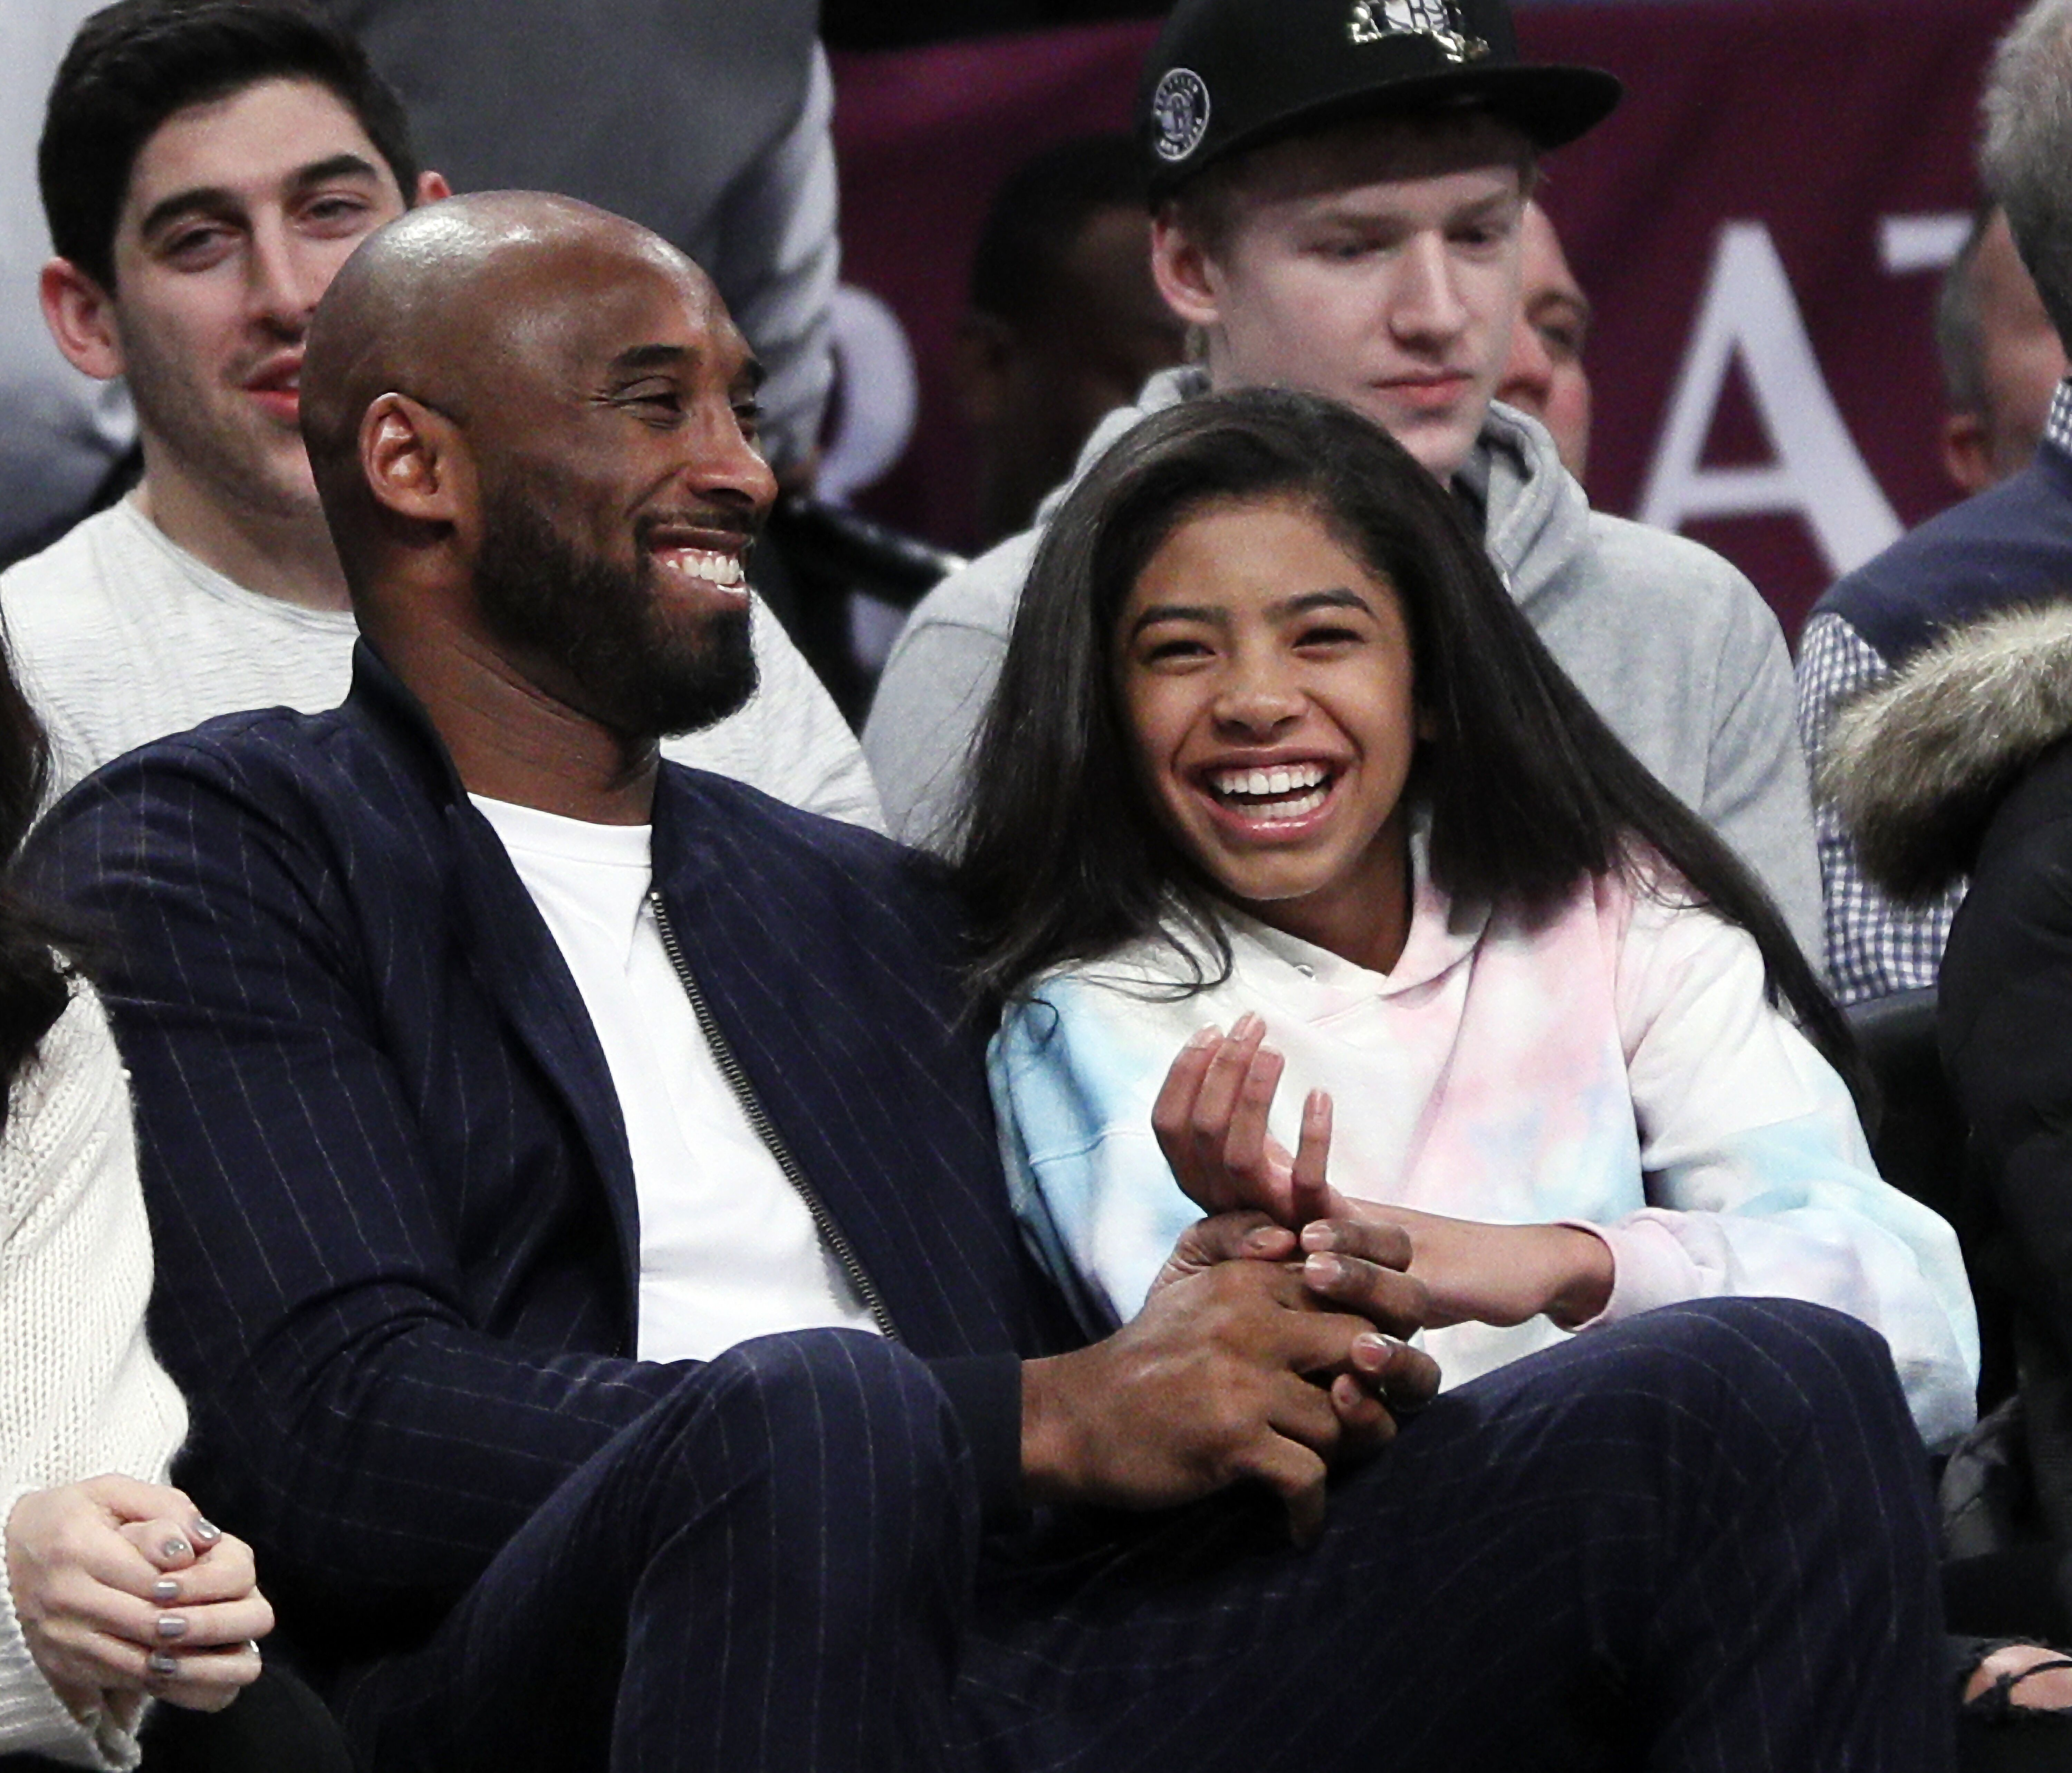 Kobe Bryant and his daughter Gigi at an NBA basketball game in December, 2019/ Source: Getty Images